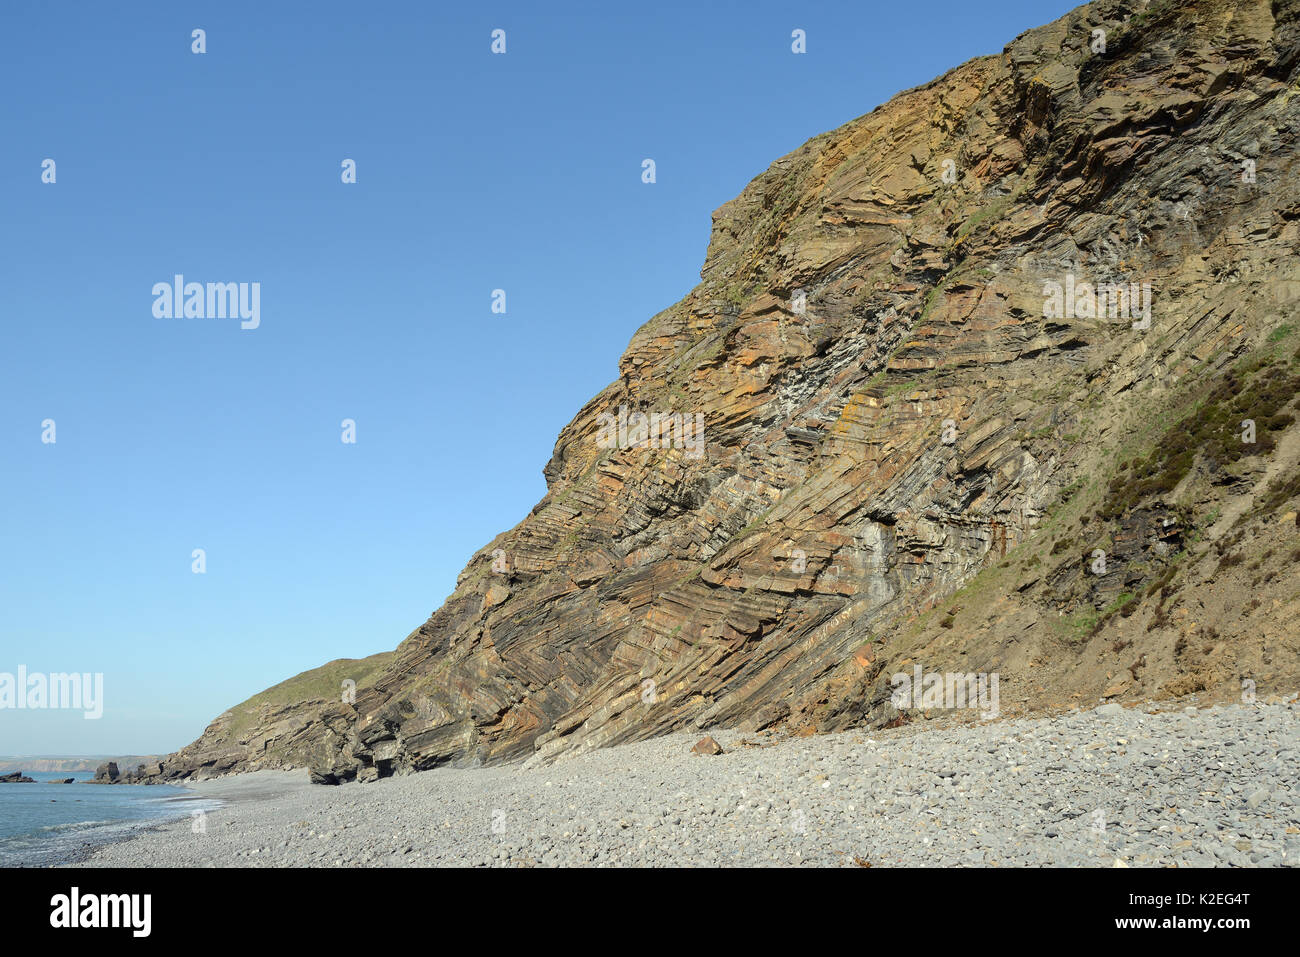 Chevron folds of Sandstone, mudstone and black shale rock layers in Millook Haven cliffs, Cornwall, UK, April 2014. - Stock Image